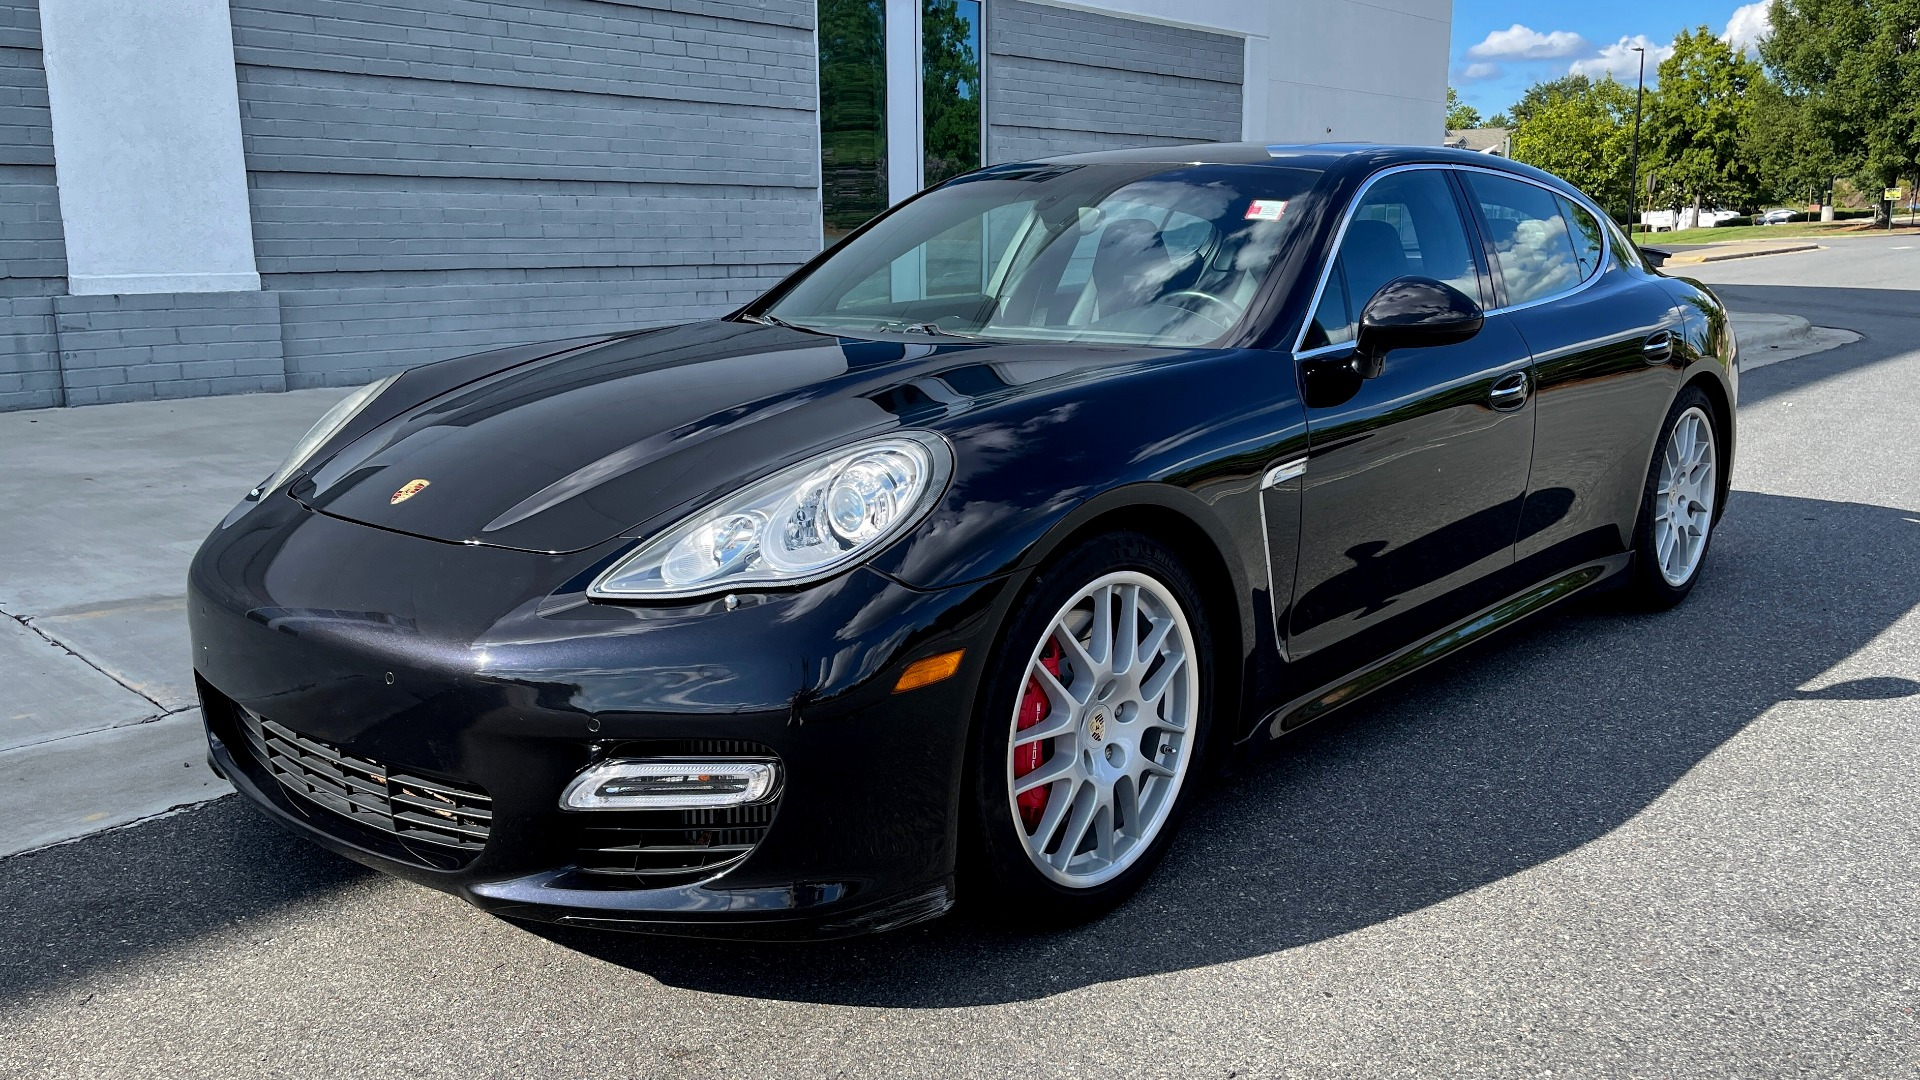 Used 2010 Porsche PANAMERA 4DR HB TURBO / SPORT CHRONO / BURMESTER / AUTO CLIMATE CONTROL for sale $40,995 at Formula Imports in Charlotte NC 28227 3